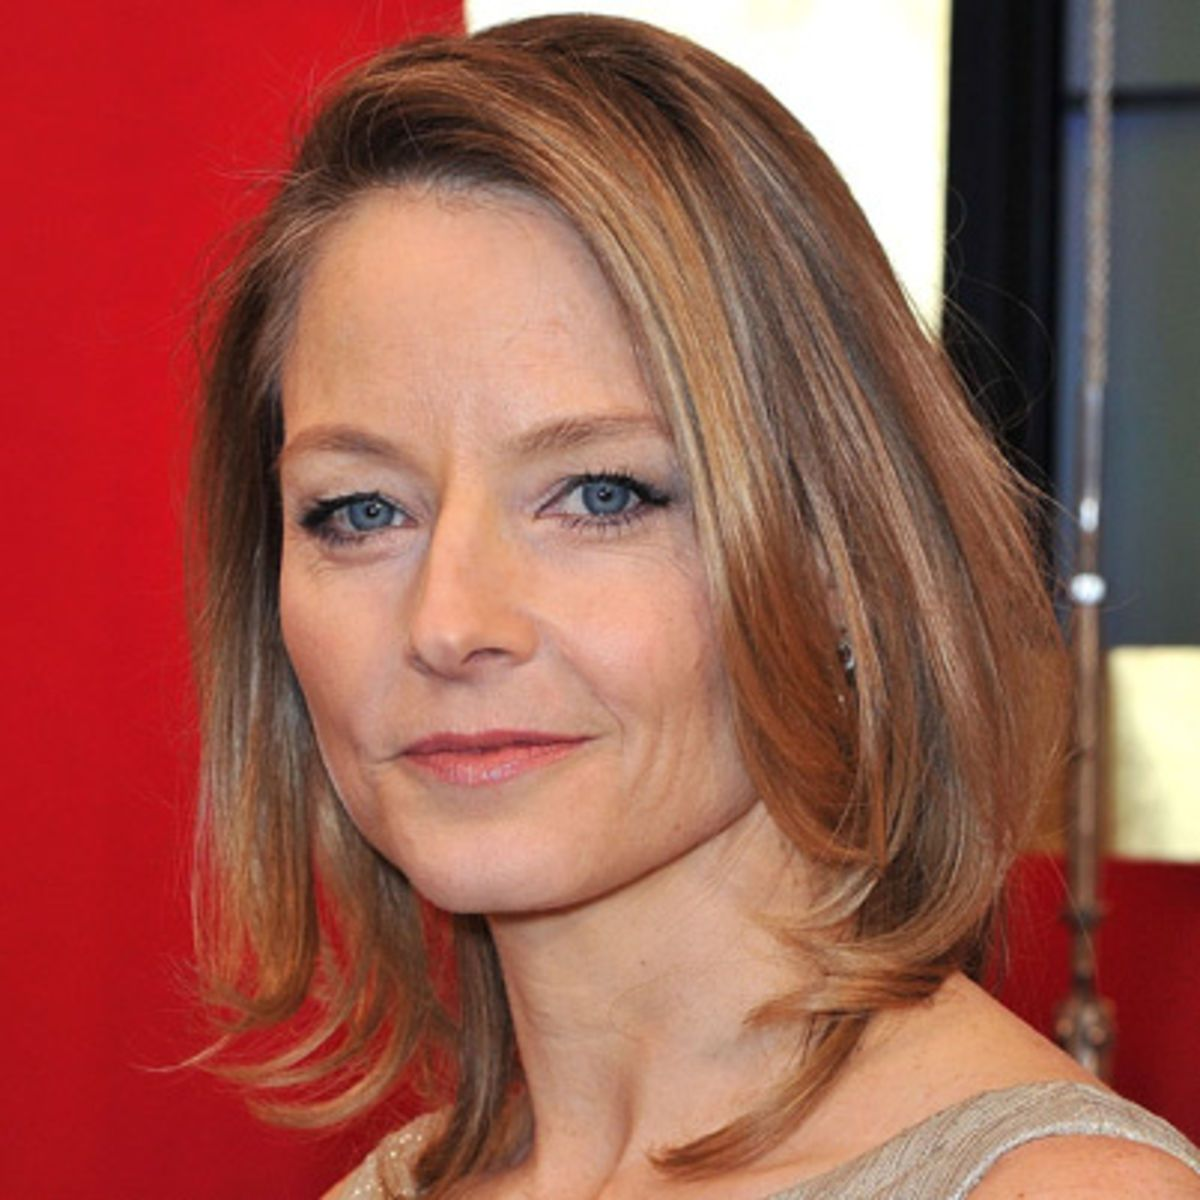 nach rassismus skandal wie politisch ist die academy oscars jodie foster is an award winning american actress director and producer known for the